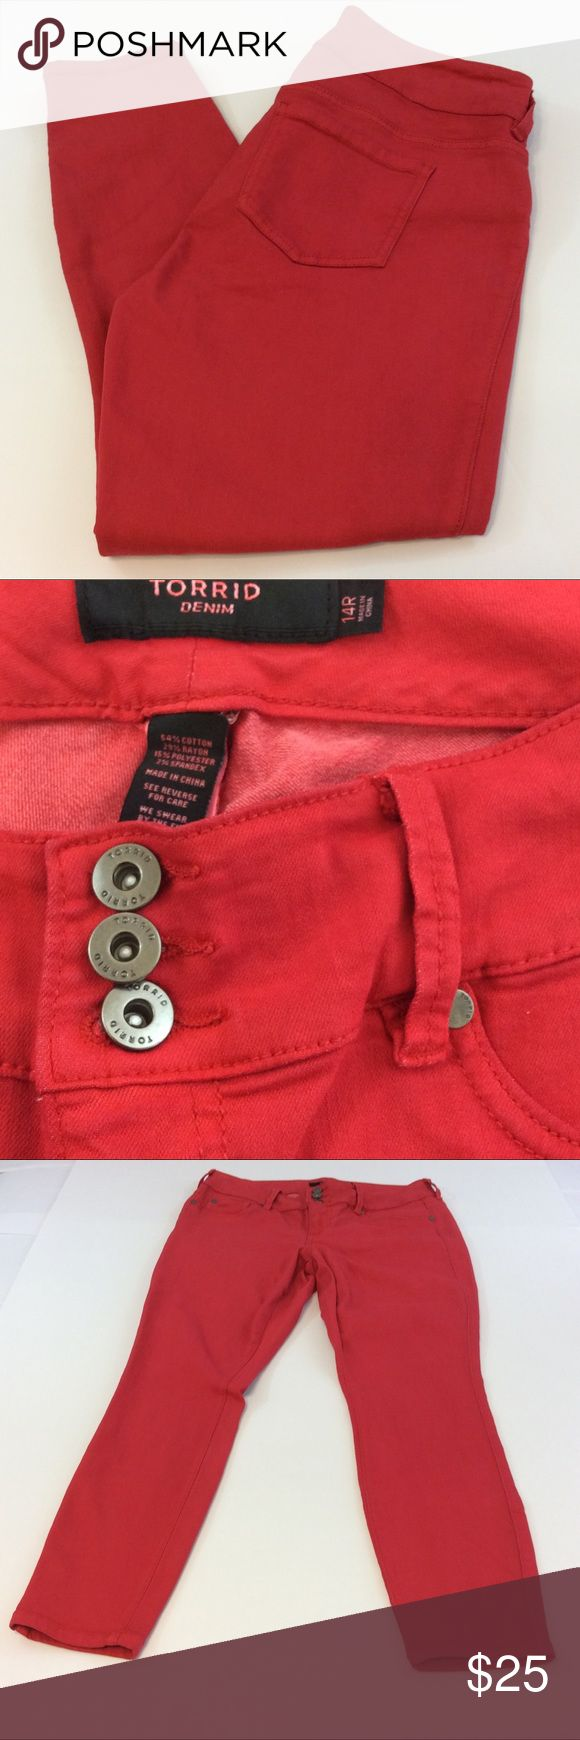 Torrid denim red skinny pants size 14R Torrid denim red skinny pants size 14R made a 54% cotton 29% rayon 15% polyester and 2% spandex. Measurements waist 34 inches, rise 9 1/2 inches and inseam 27 inches. GUC questions??? Please ask torrid Jeans Skinny